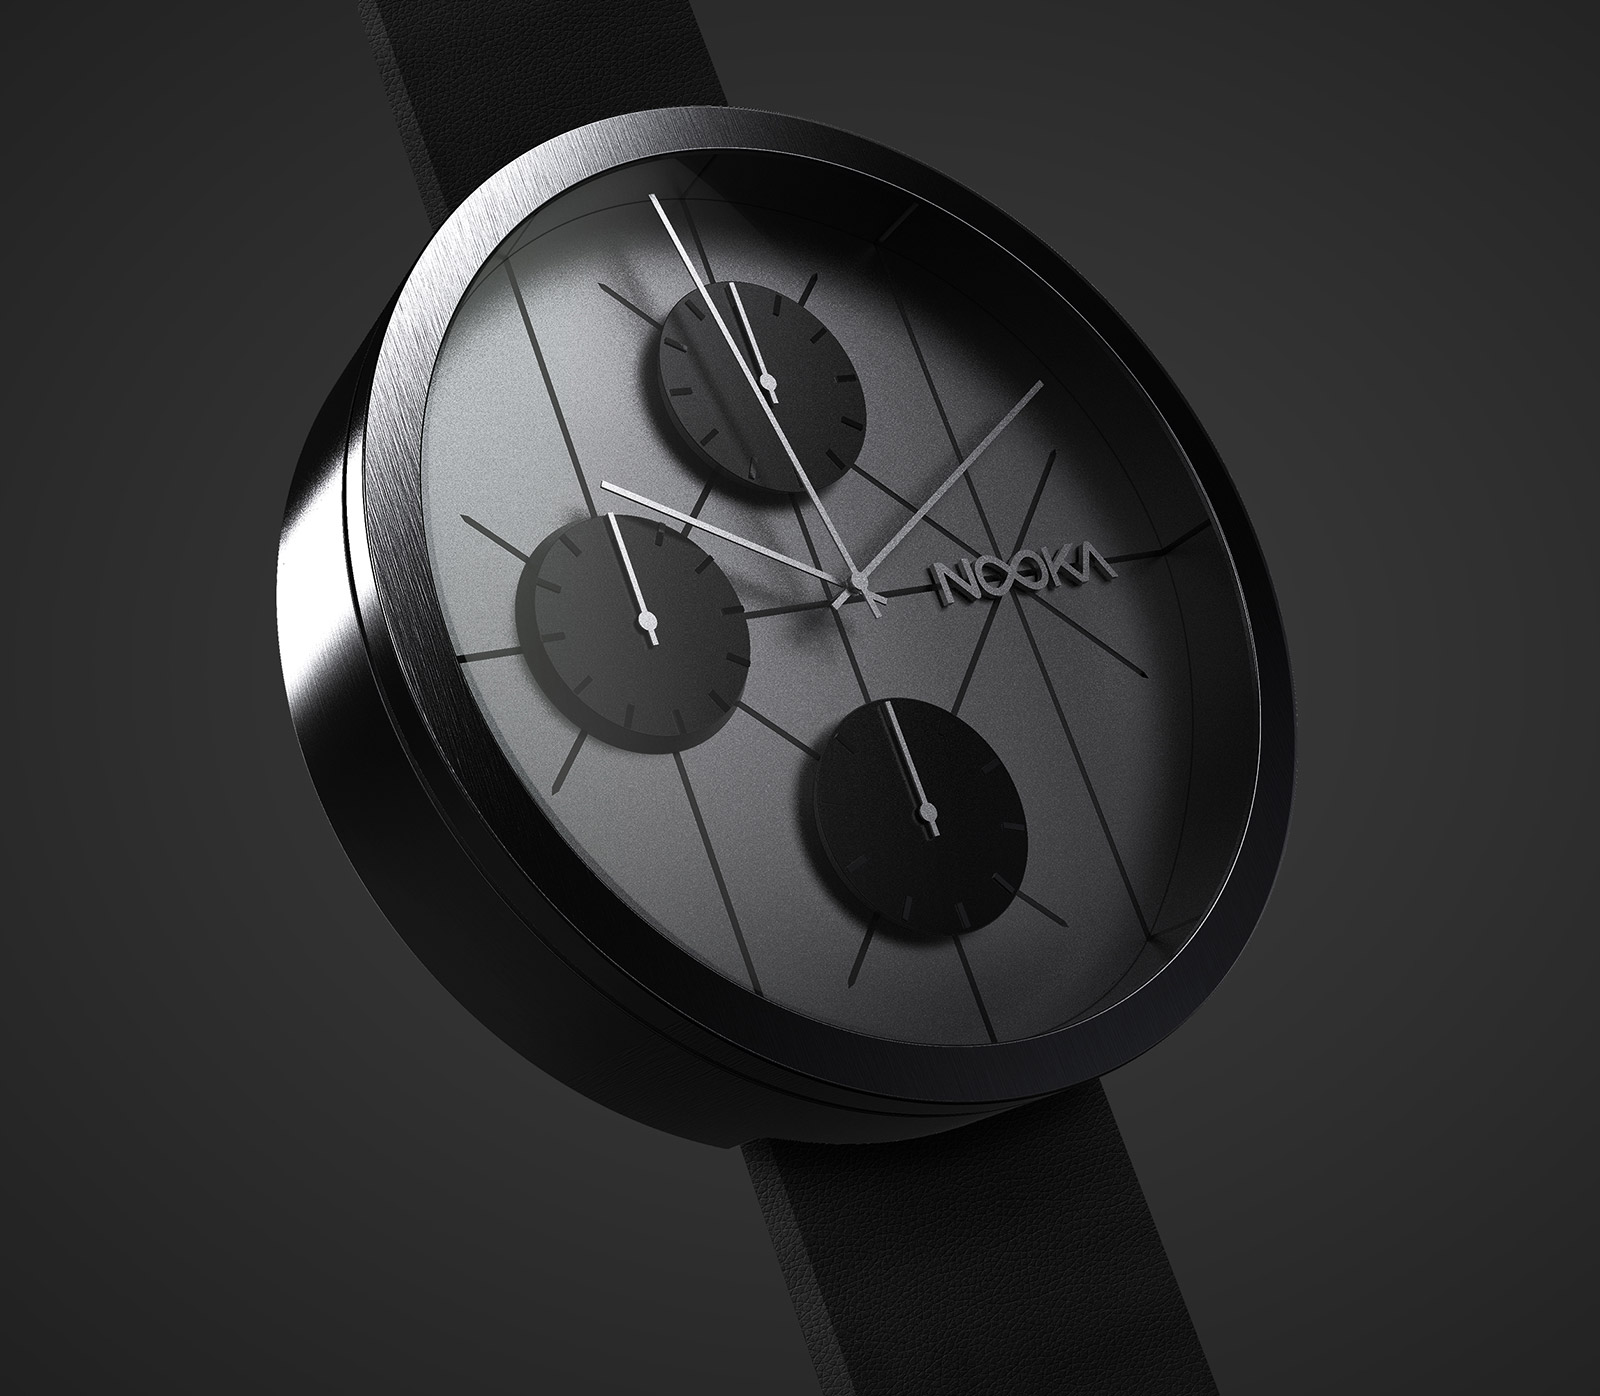 The NOOKRONO: A Watch Inspired by the 1960's Space Race